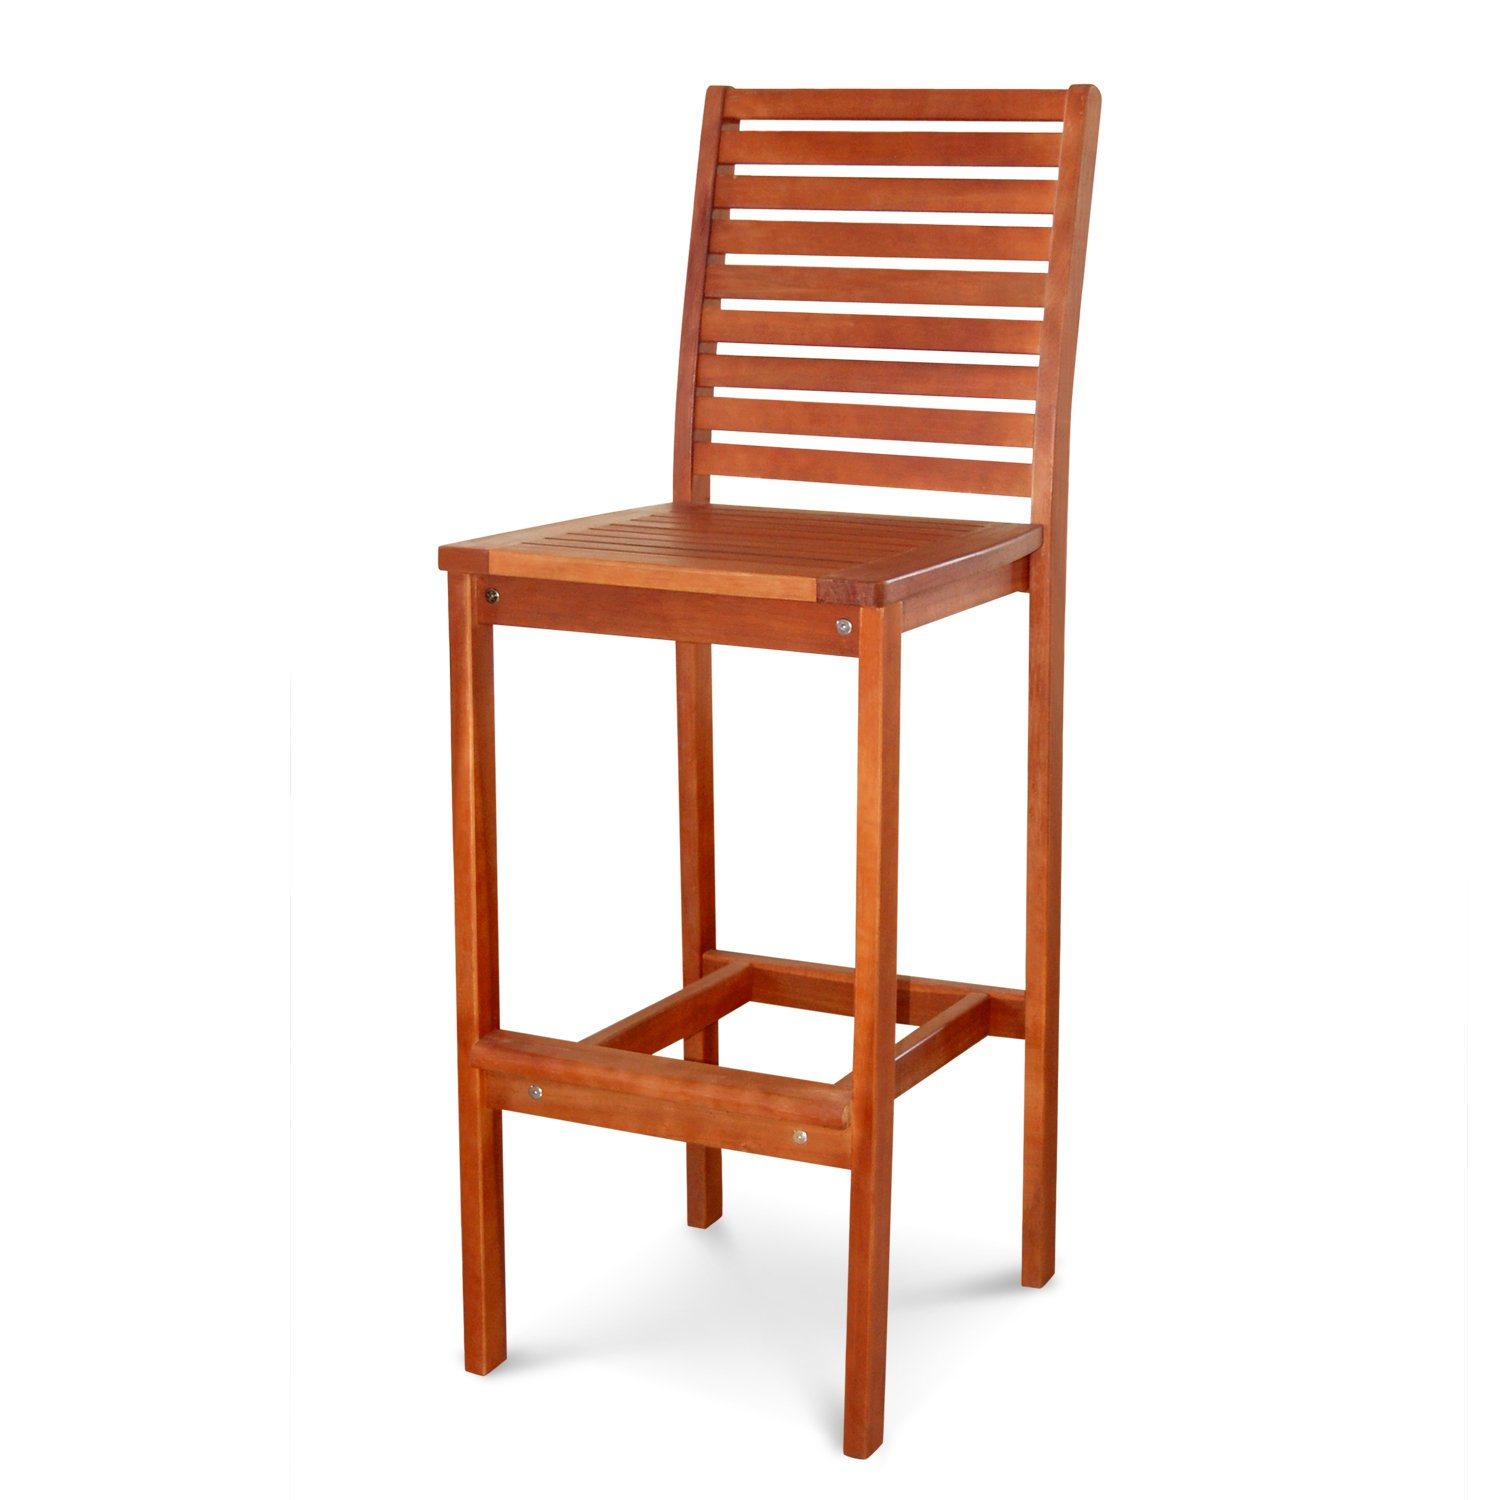 Outdoor wood chair furniture - Outdoor Wood Chair Furniture 4